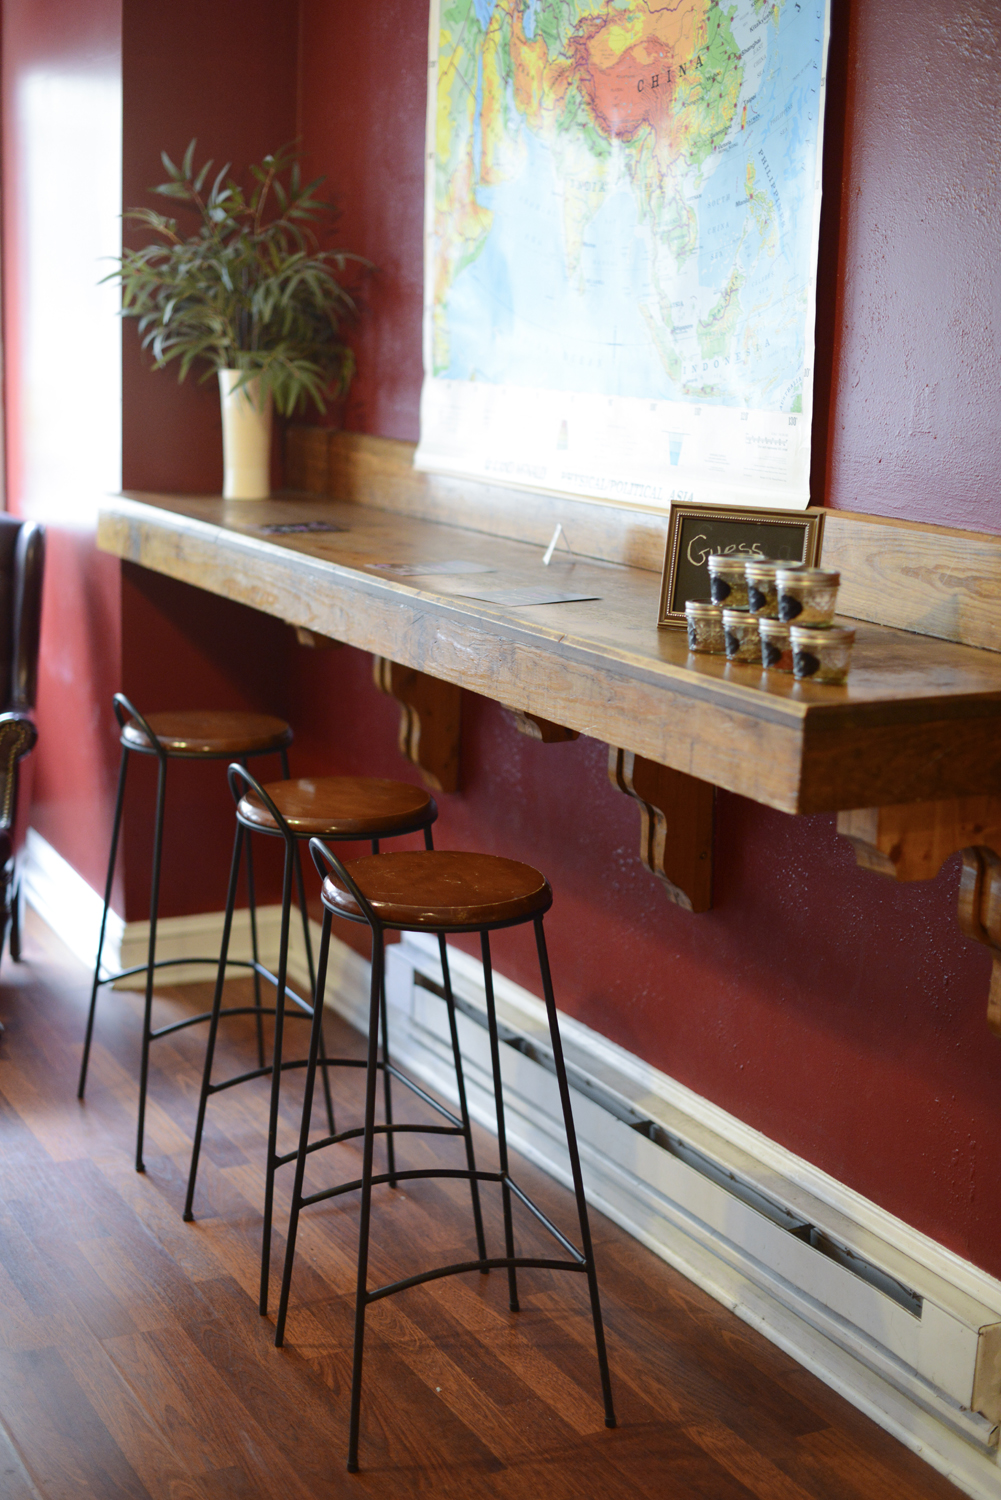 The By and By (Coffee on the Corner) in Staunton, Virginia